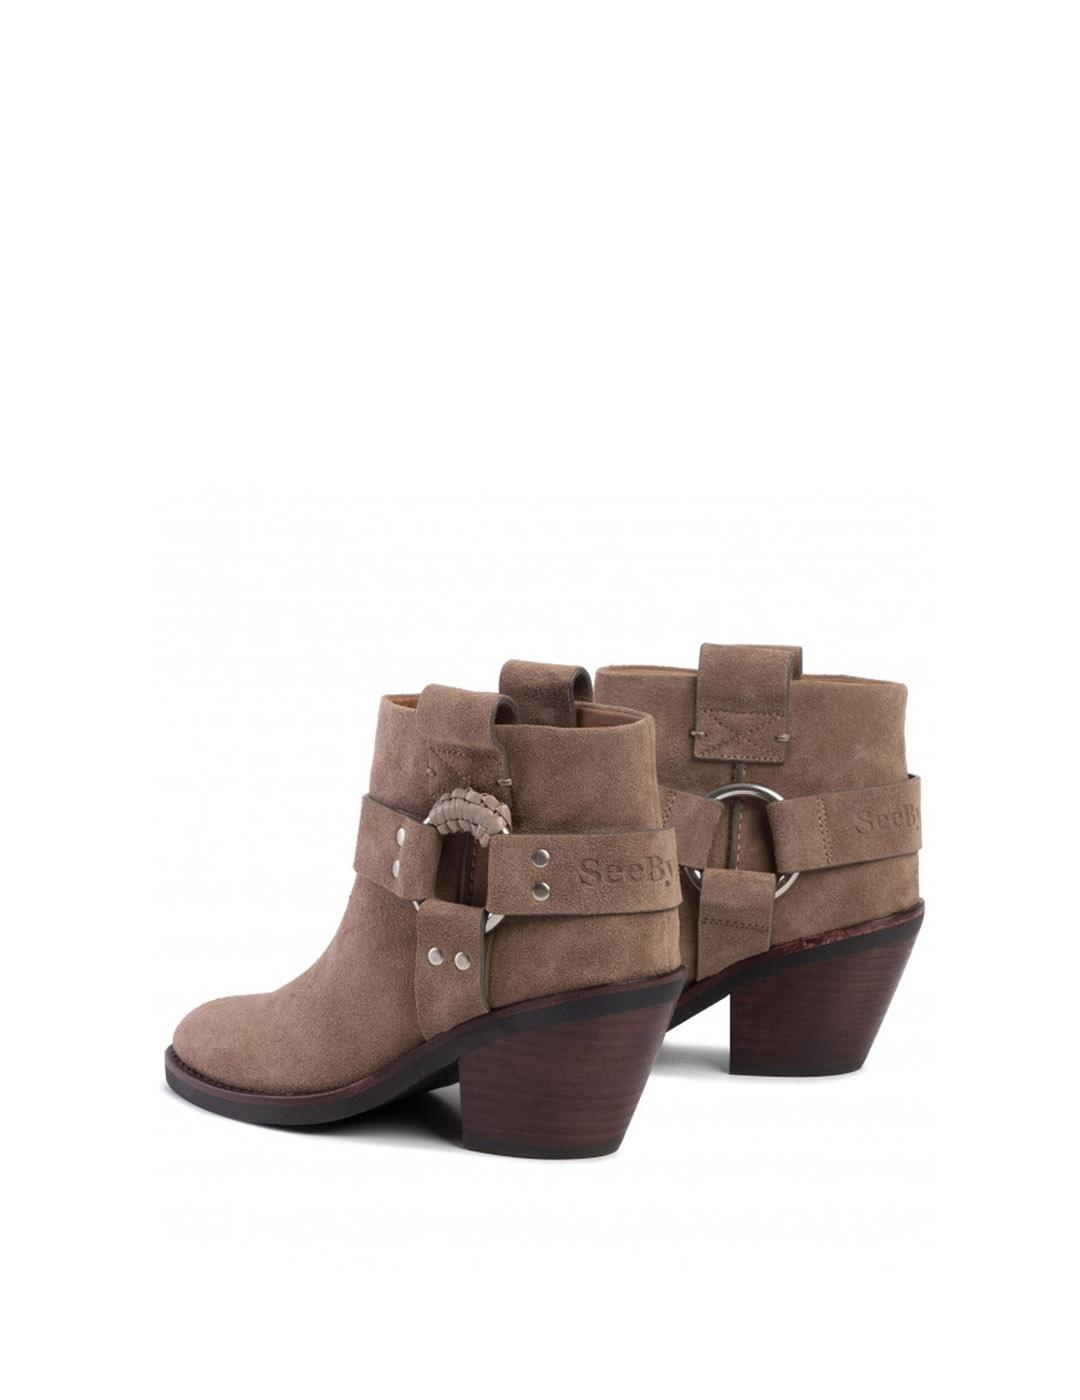 Botines See  by Chloé beige de ante Crosta Taupe